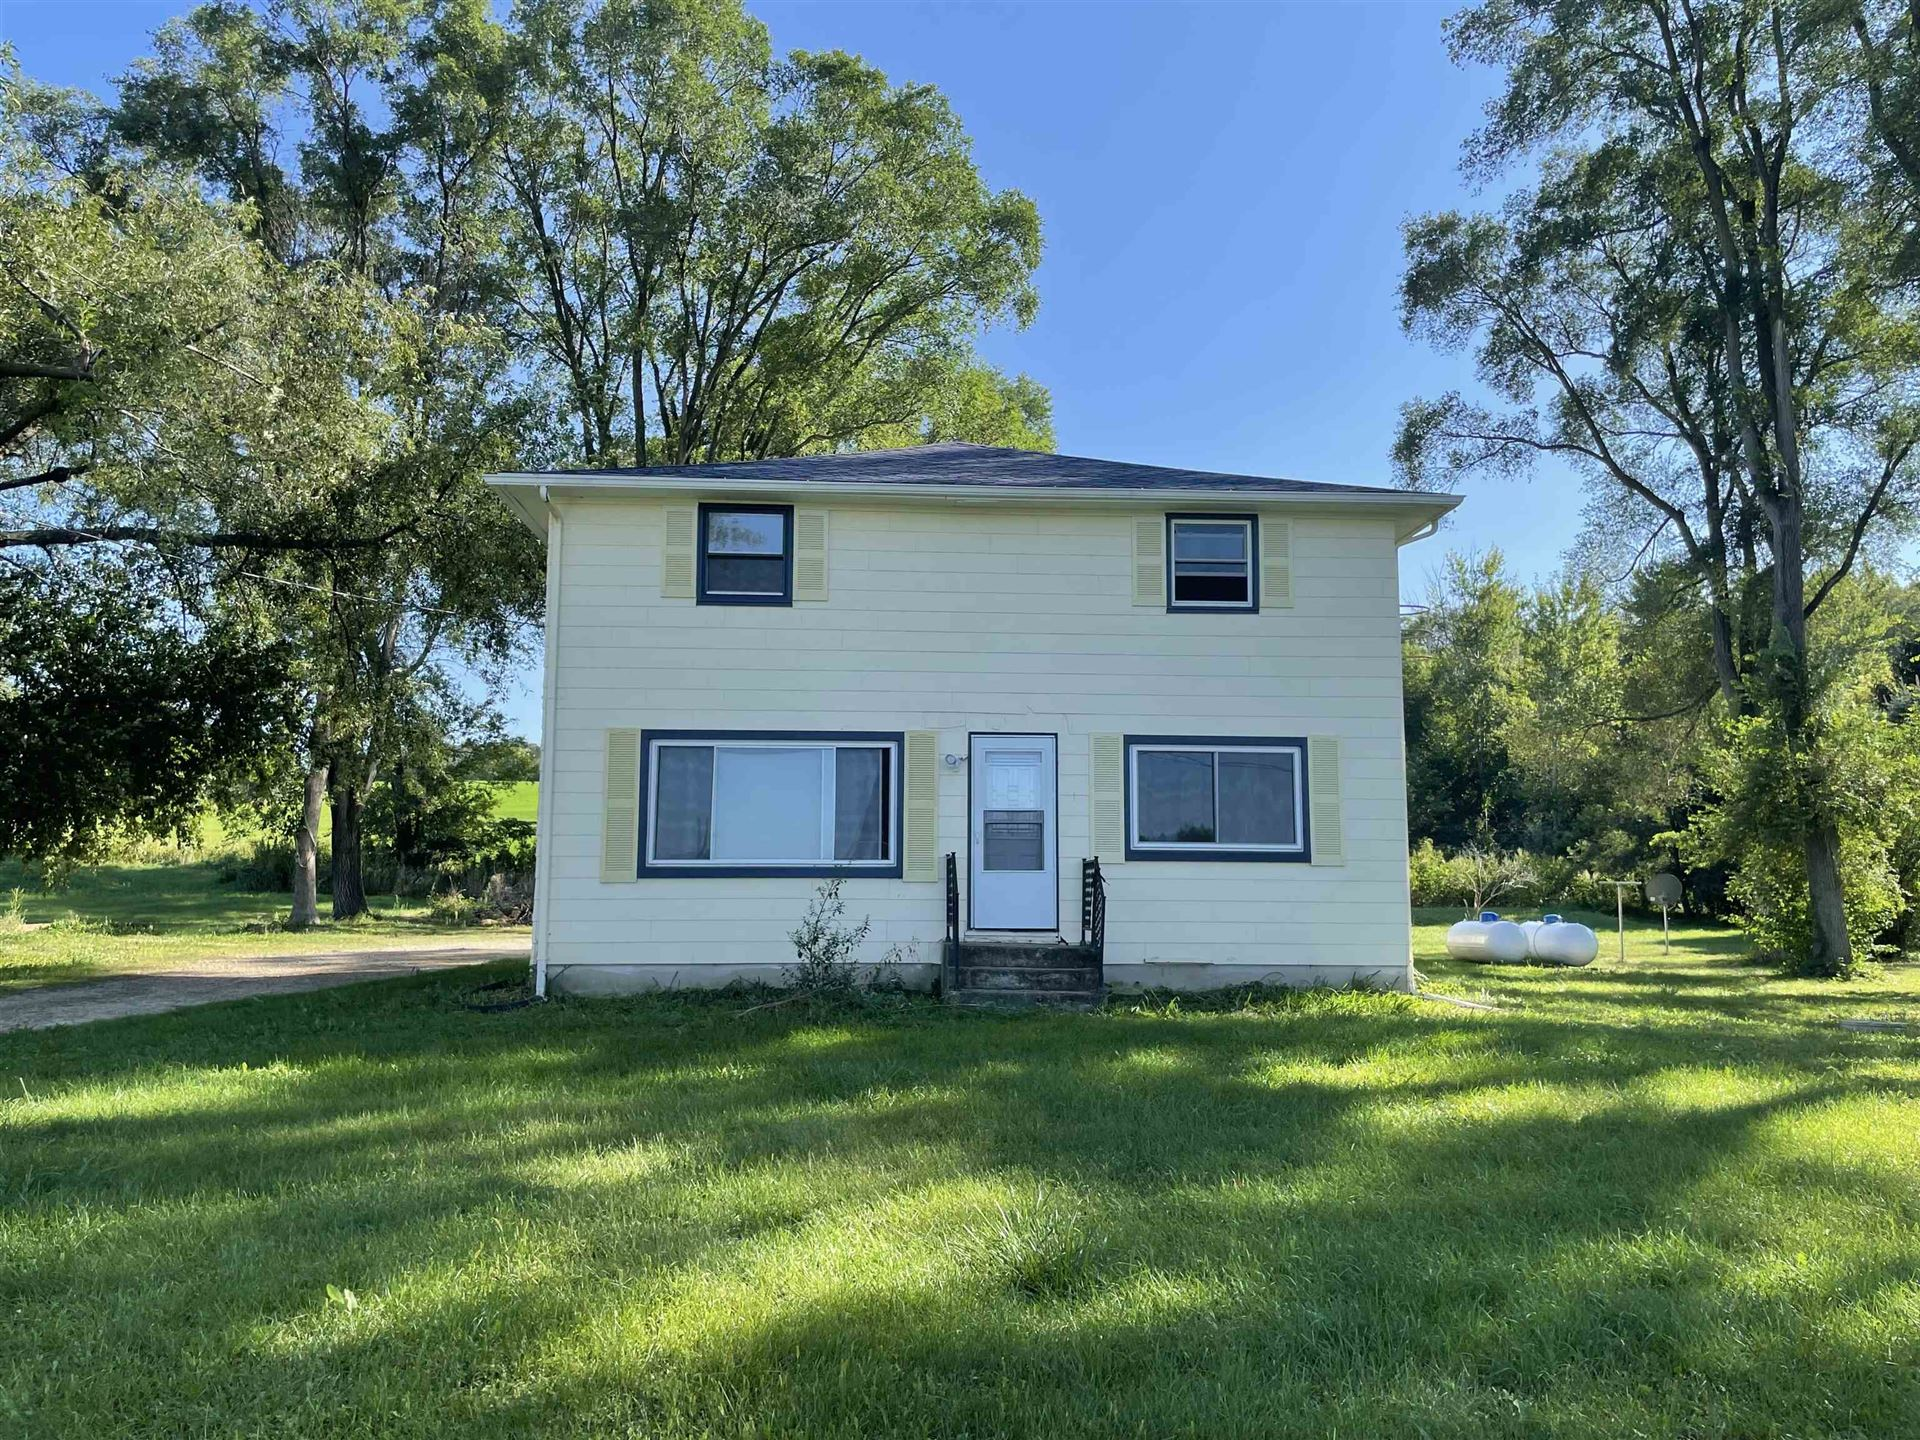 Photo for 3339 Field View Ln, Cottage Grove, WI 53527 (MLS # 1919519)